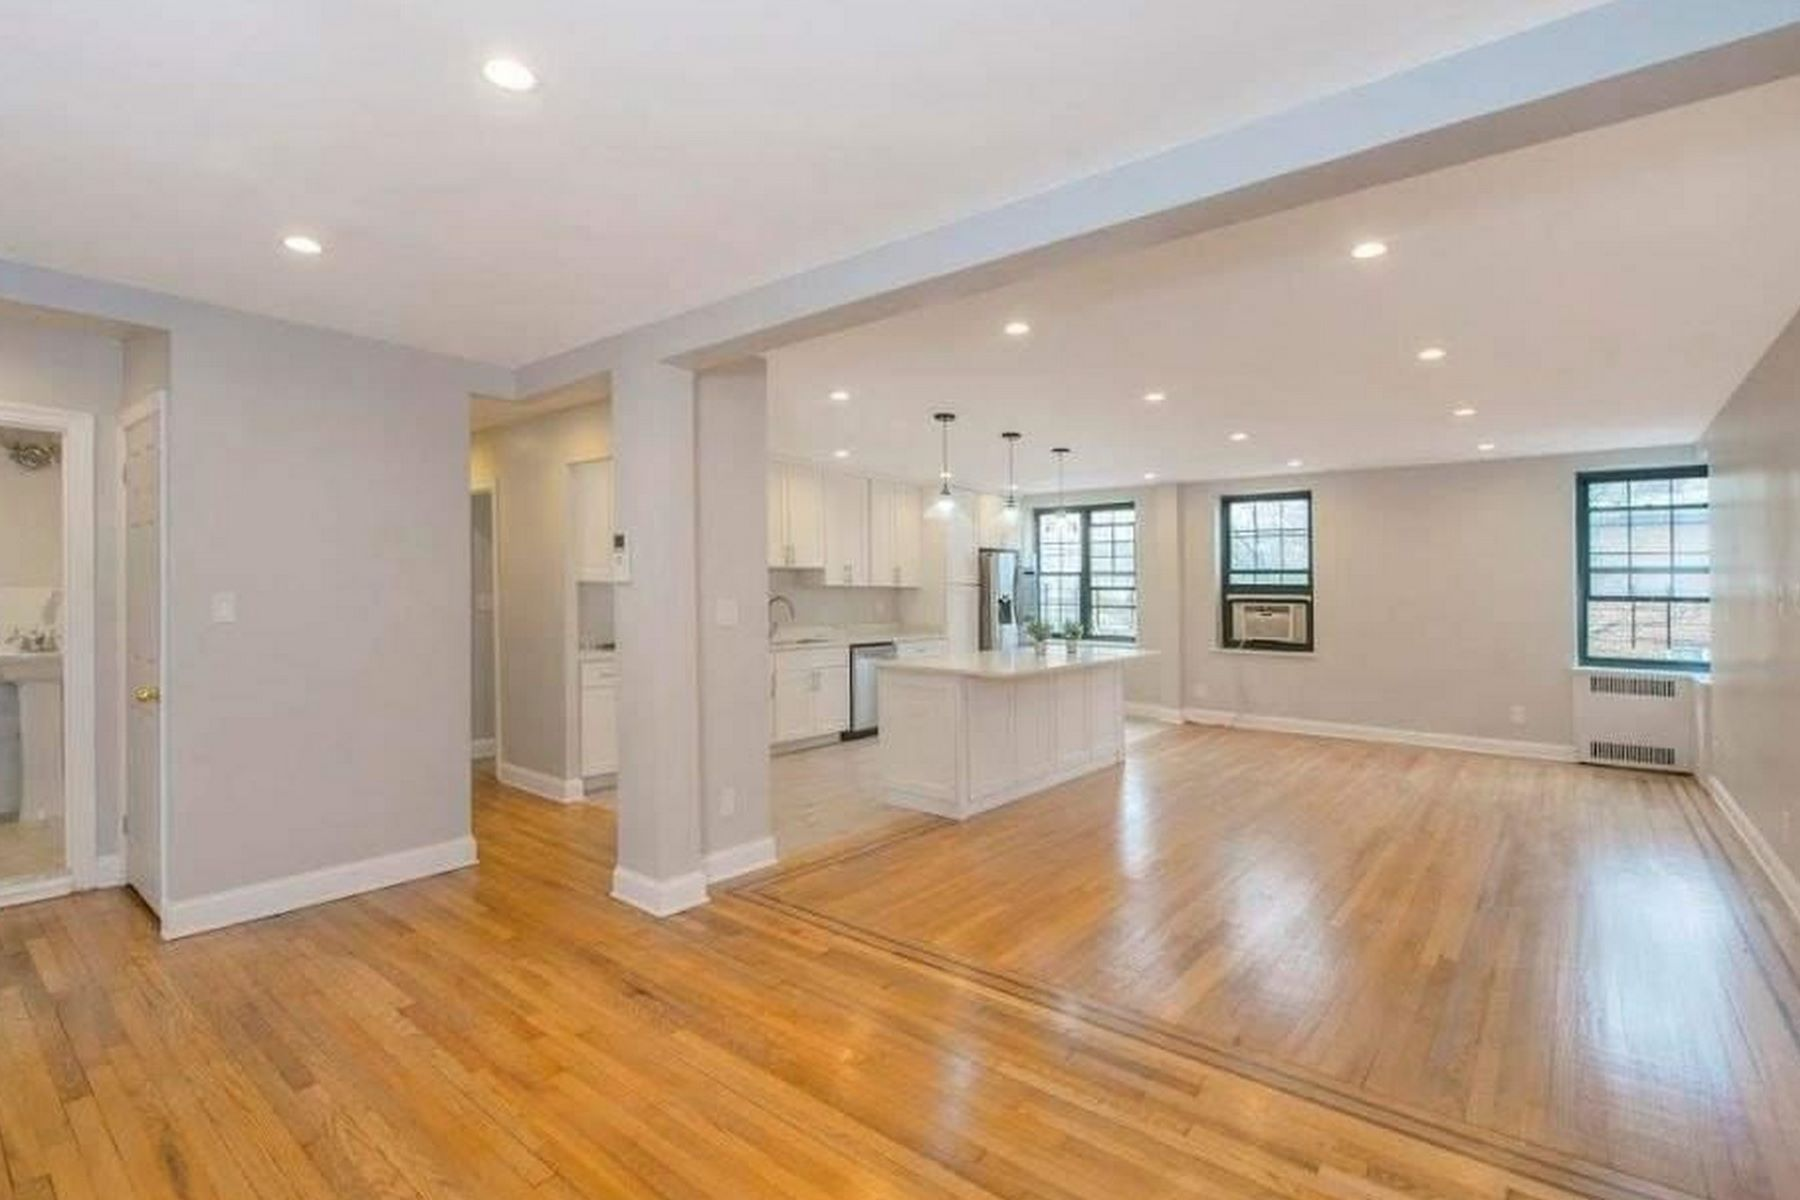 Co-op Properties for Active at Forest Hills 94-11 69th Ave , 203 Forest Hills, New York 11375 United States